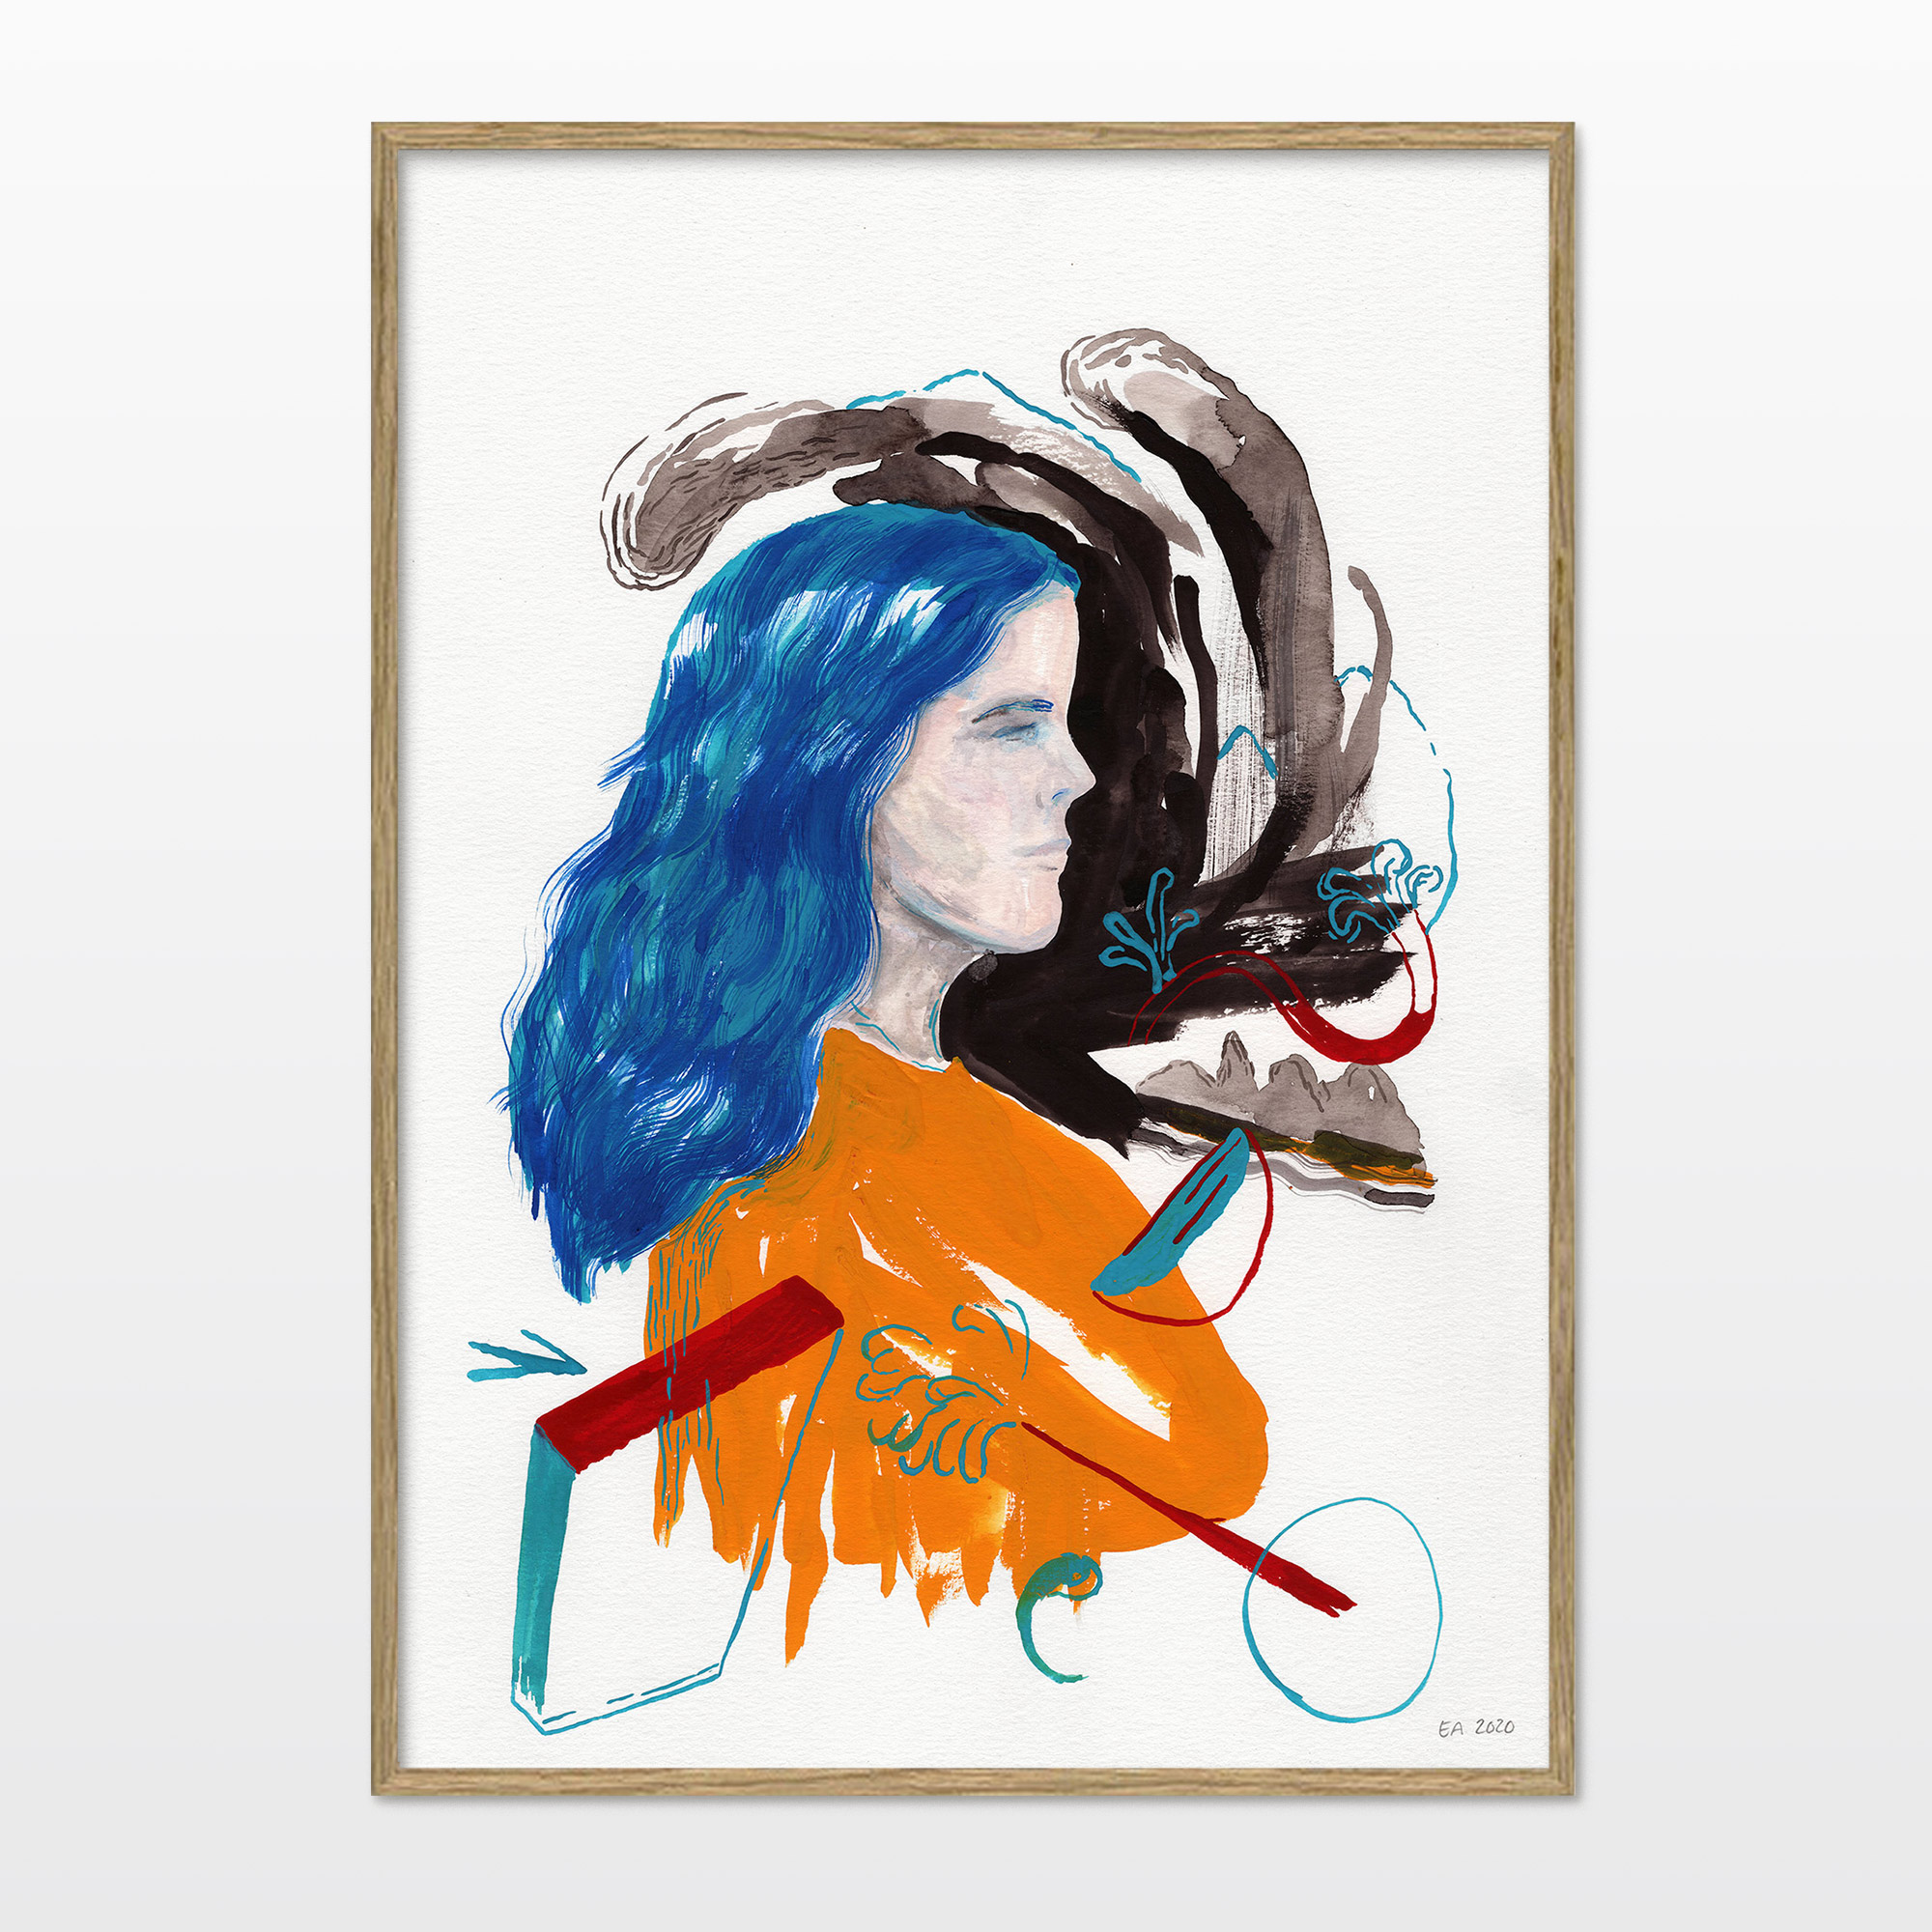 drawings, watercolor-paintings, aesthetic, colorful, figurative, graphical, illustrative, bodies, botany, people, black, blue, orange, acrylic, ink, paper, watercolor, beautiful, danish, decorative, design, faces, female, interior, interior-design, modern, modern-art, nordic, plants, posters, pretty, scandinavien, women, Buy original high quality art. Paintings, drawings, limited edition prints & posters by talented artists.